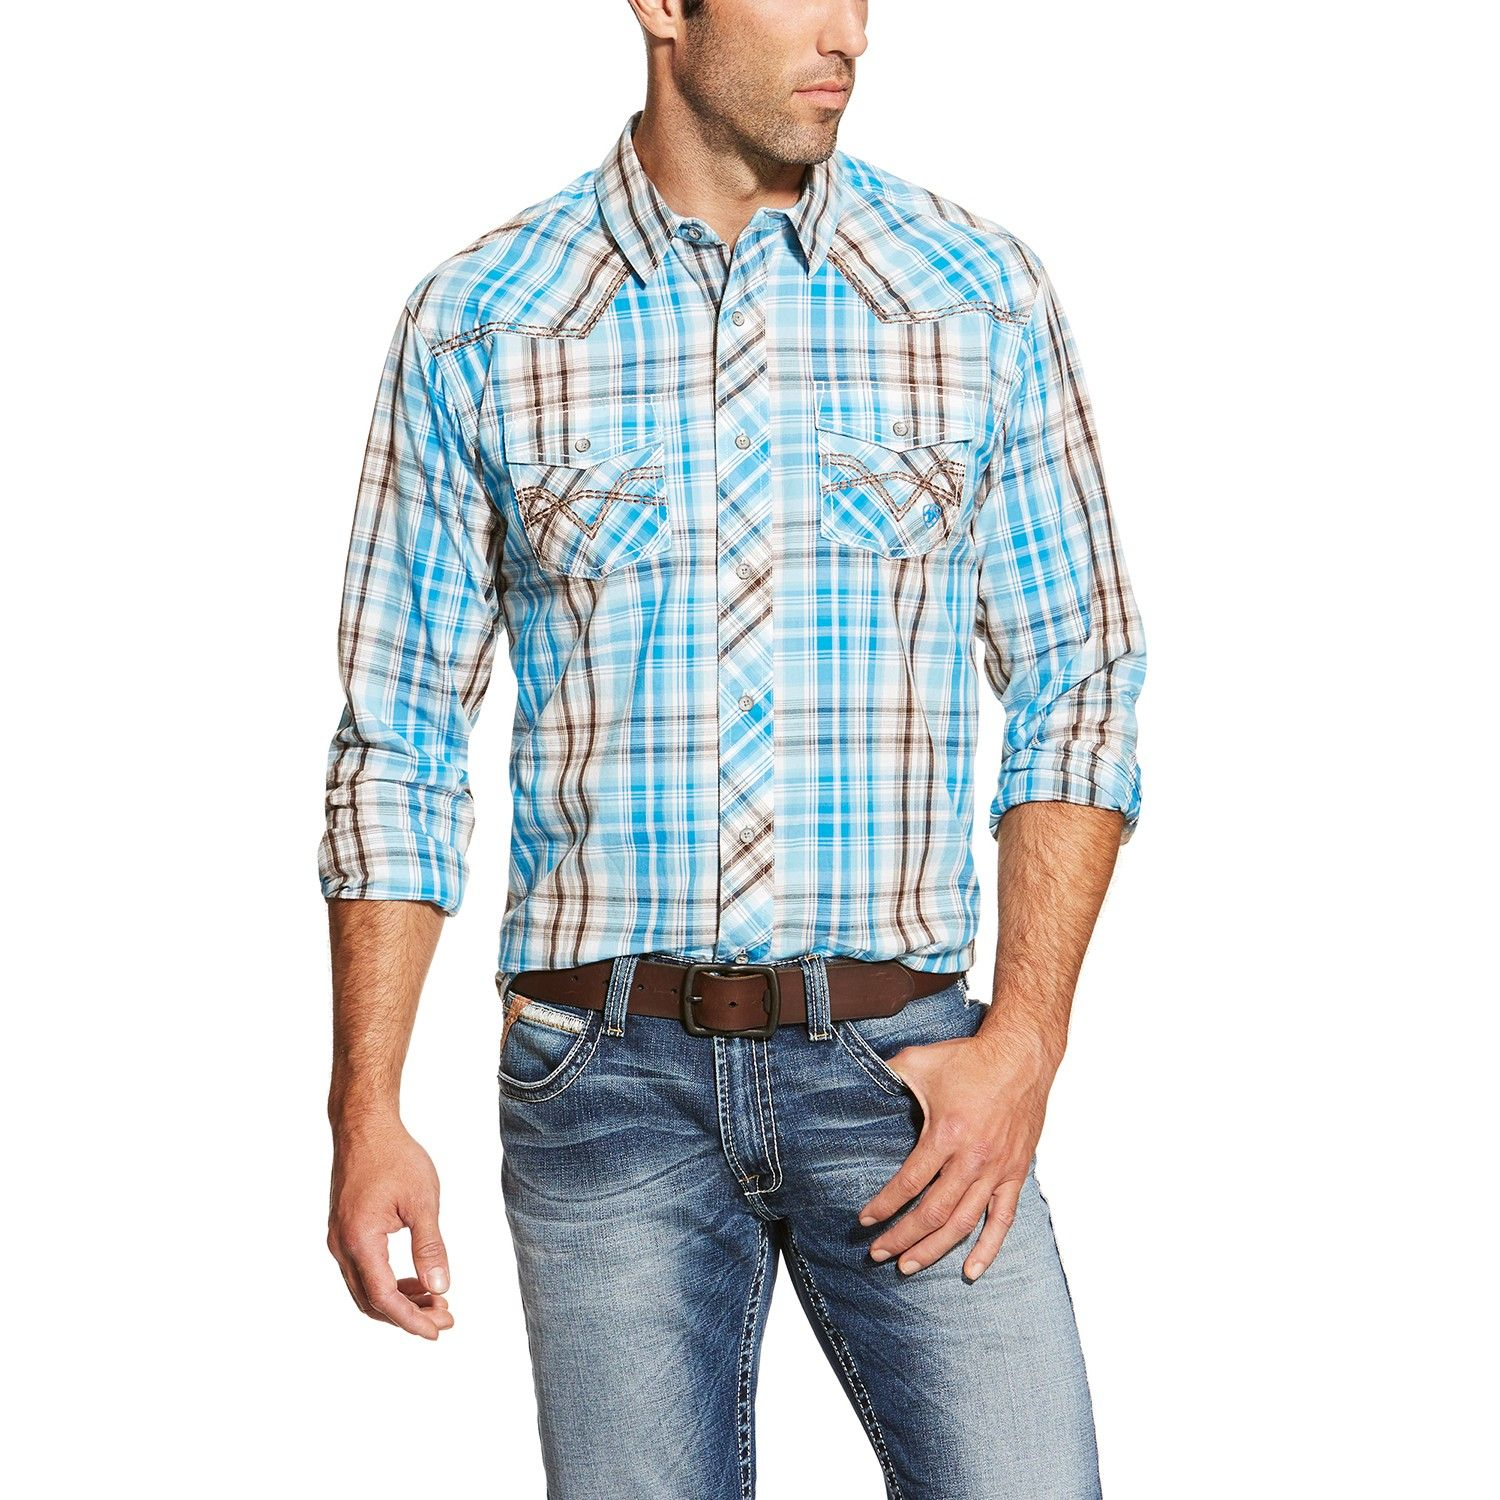 Ariat Mens Retro Plaid Button Down Shirts Teal & Brown | Clothes ...